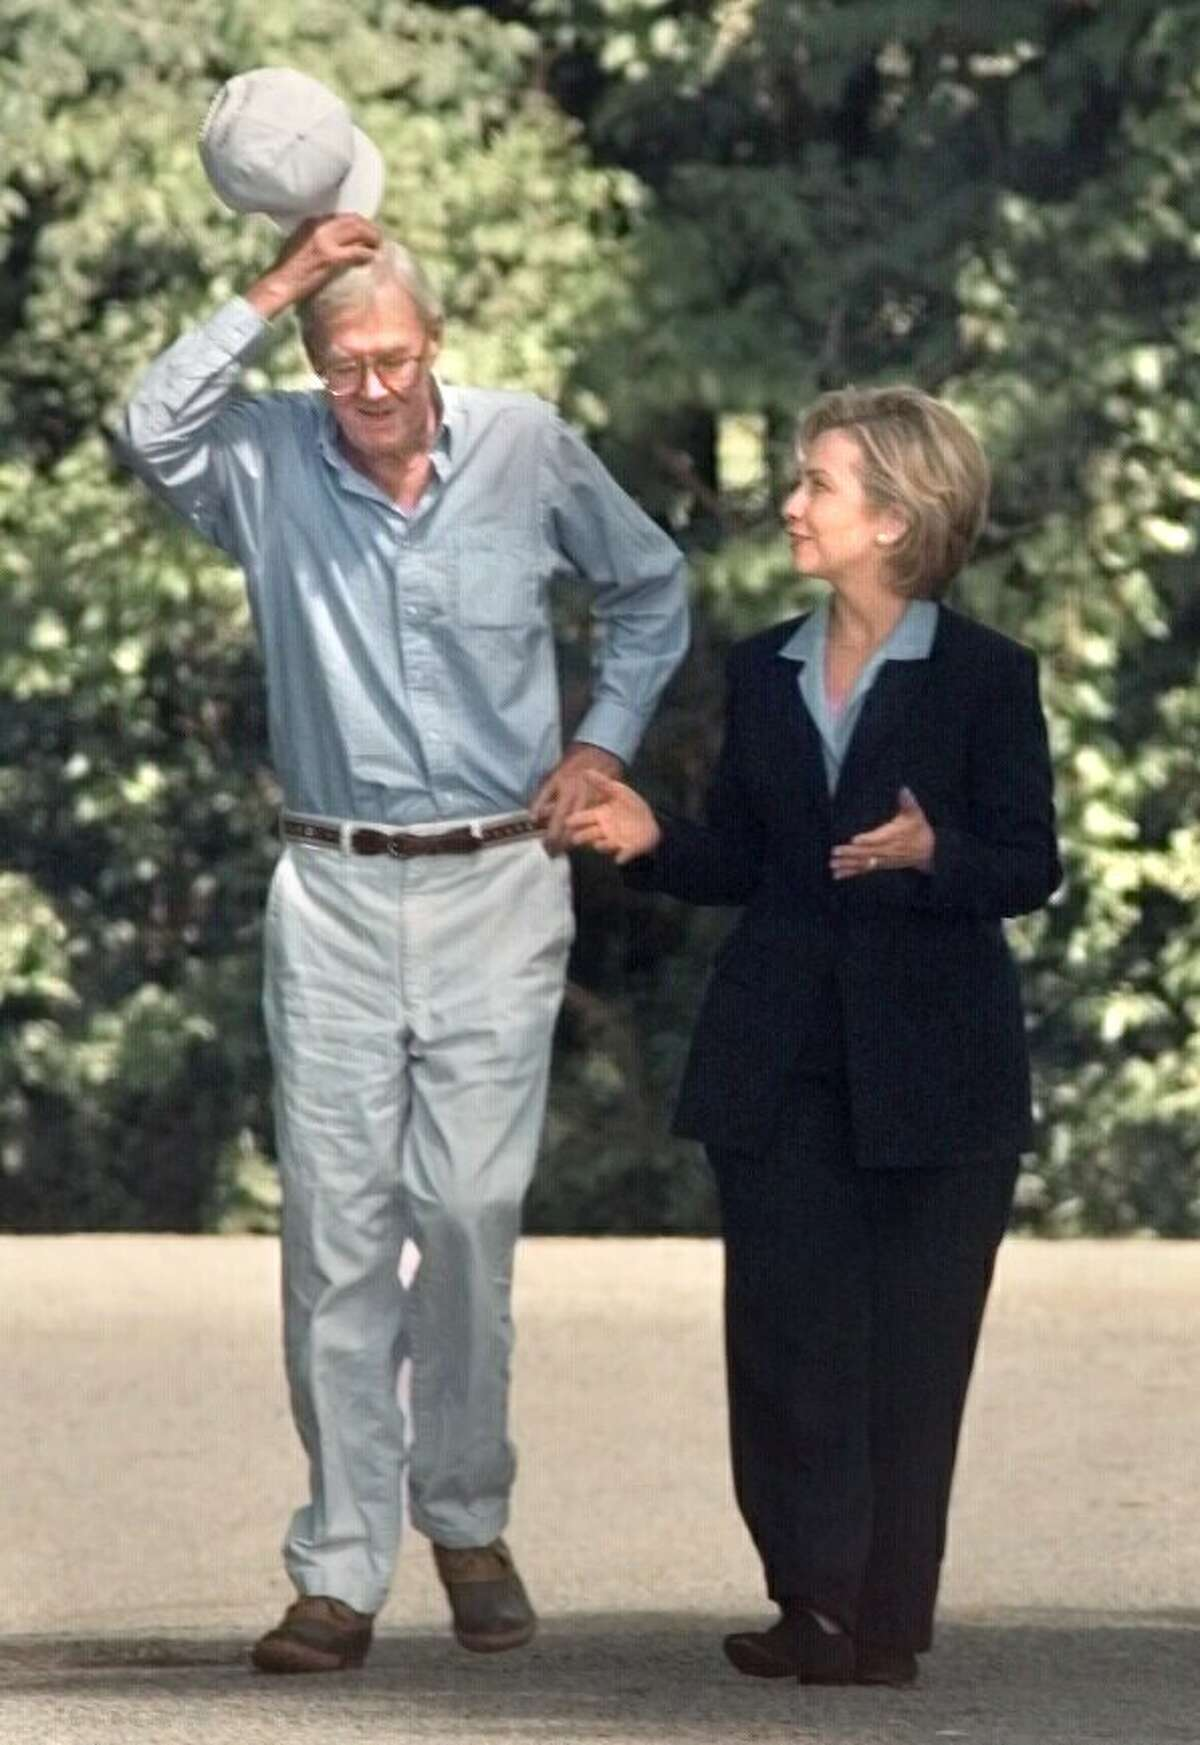 Retiring U.S. Senator Danial Patrick Moynihan talks with First Lady Hillary Clinton during a walk around the grounds of his summer home on Wednesday, July 7, 1999, in Davenport, N.Y. (Michael P. Farrell/Times Union archive)